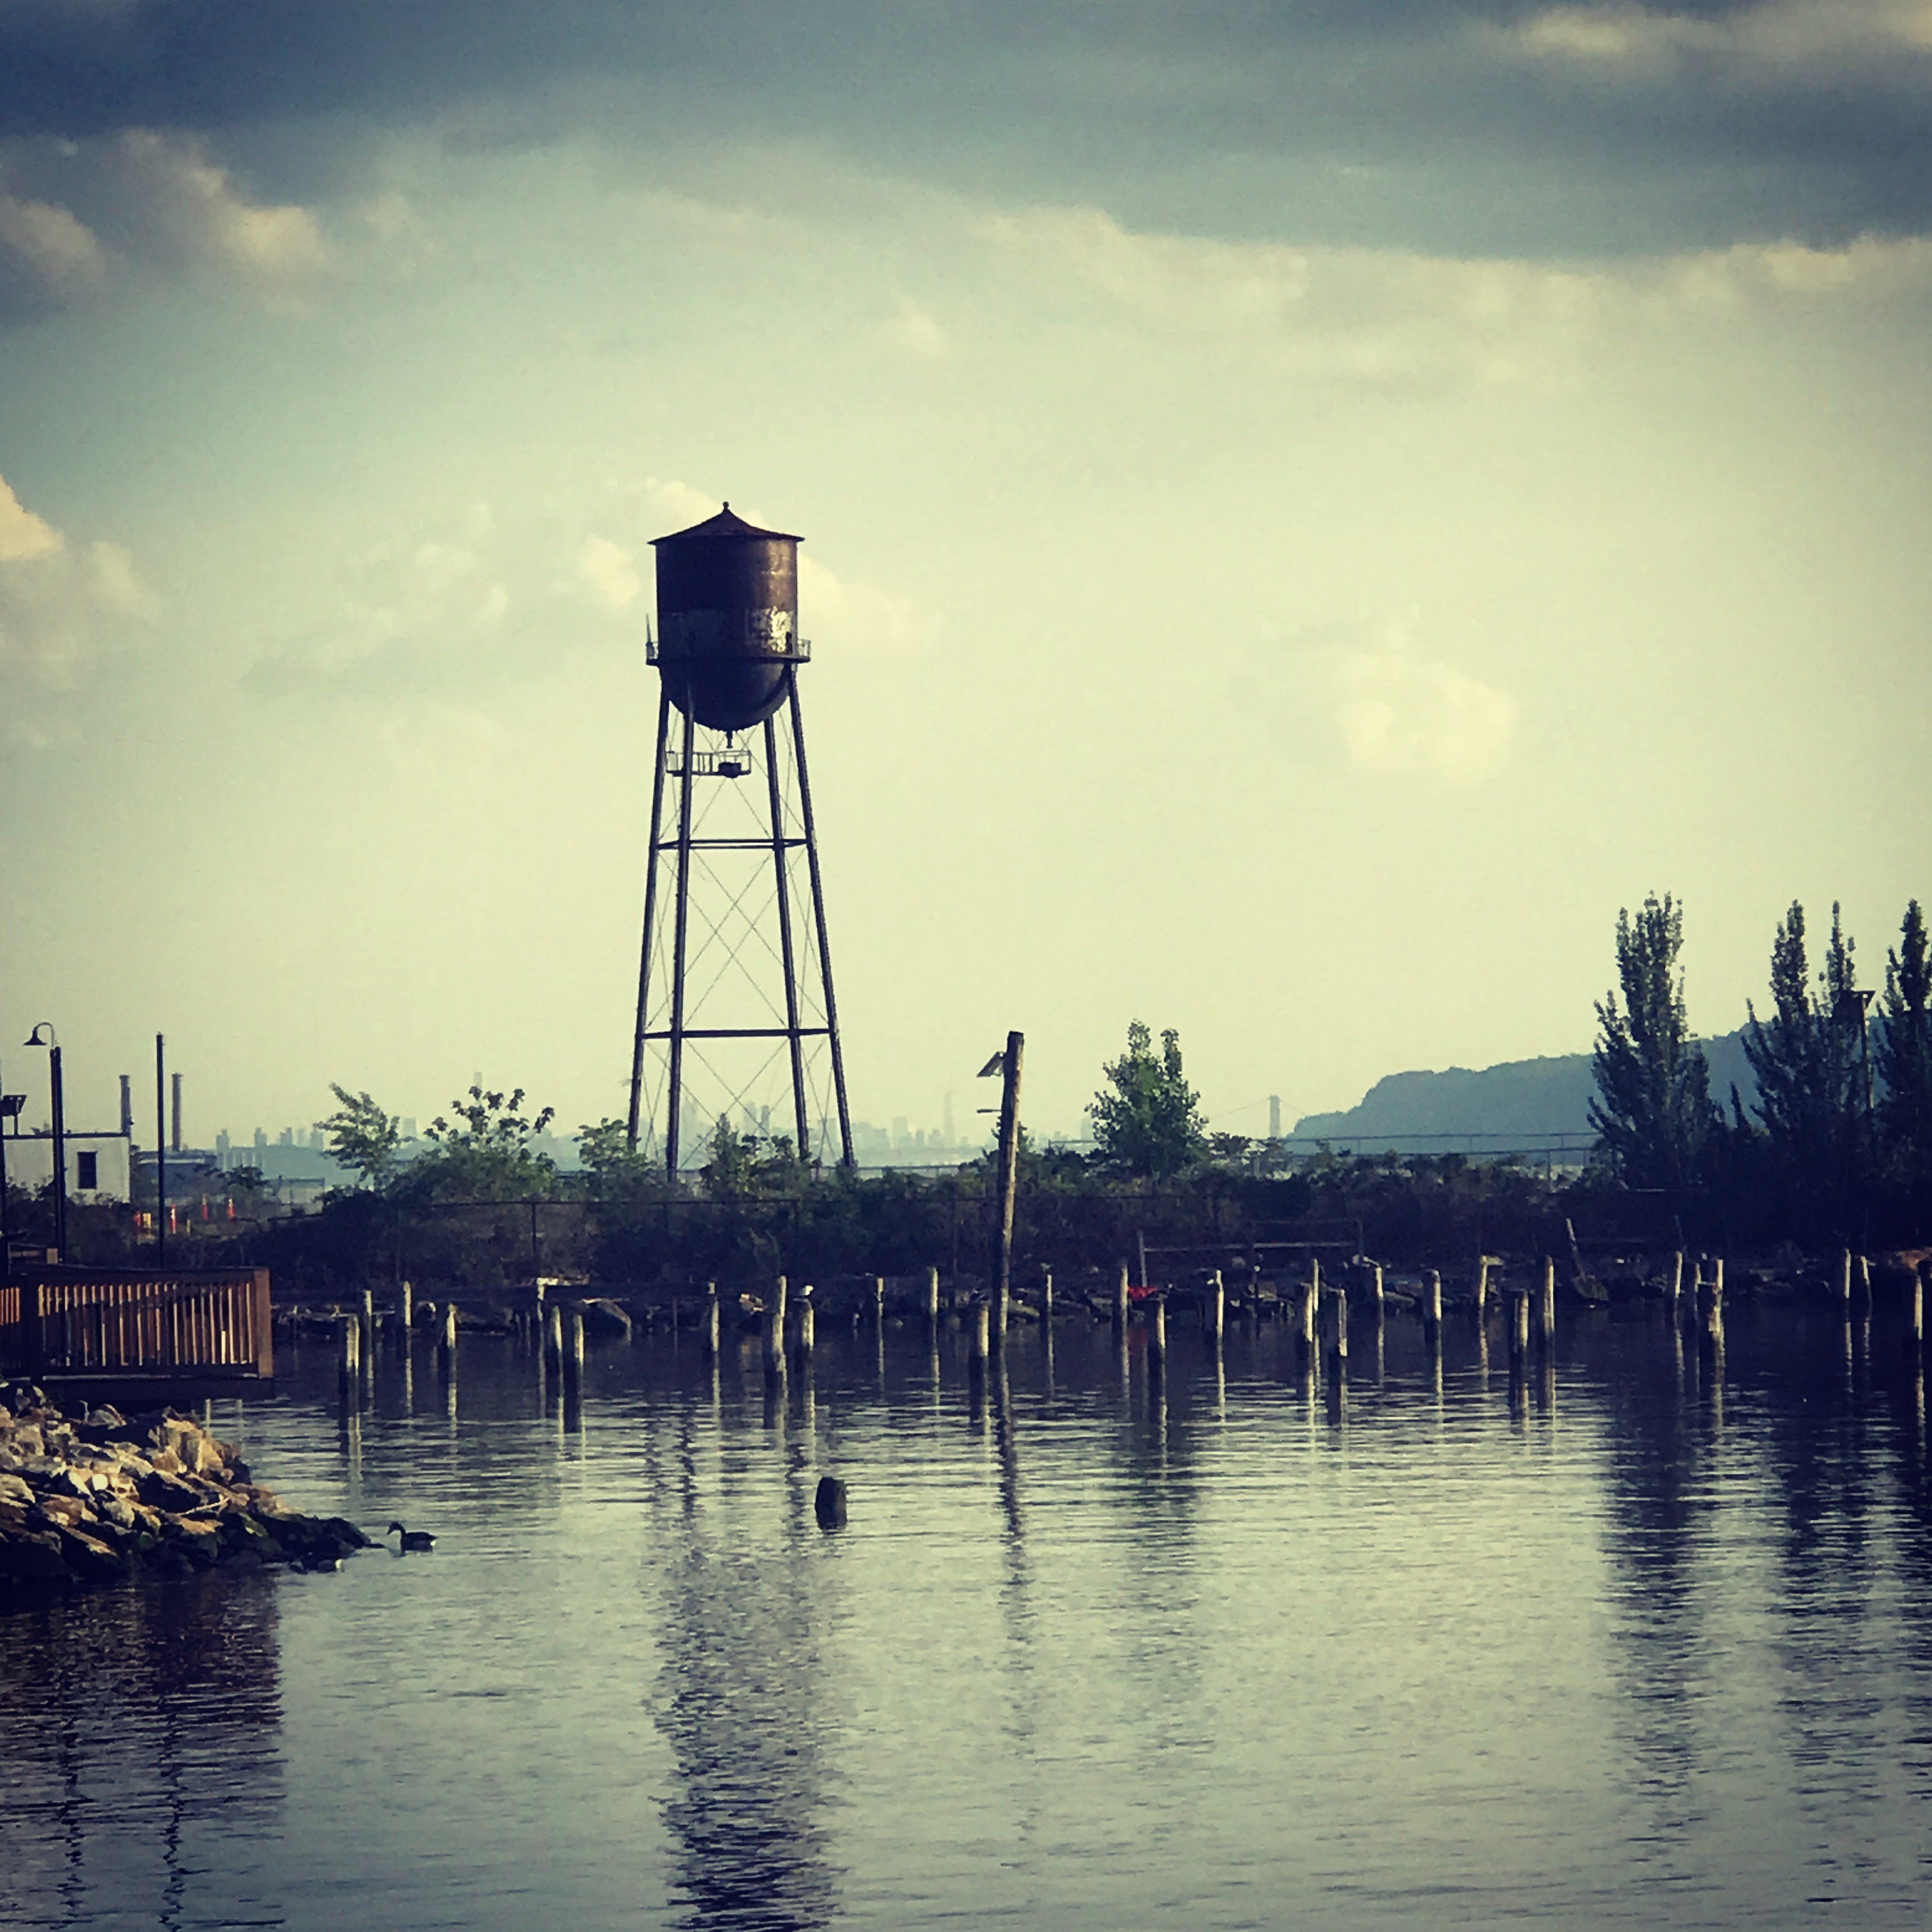 Free stock photo of river, water tower